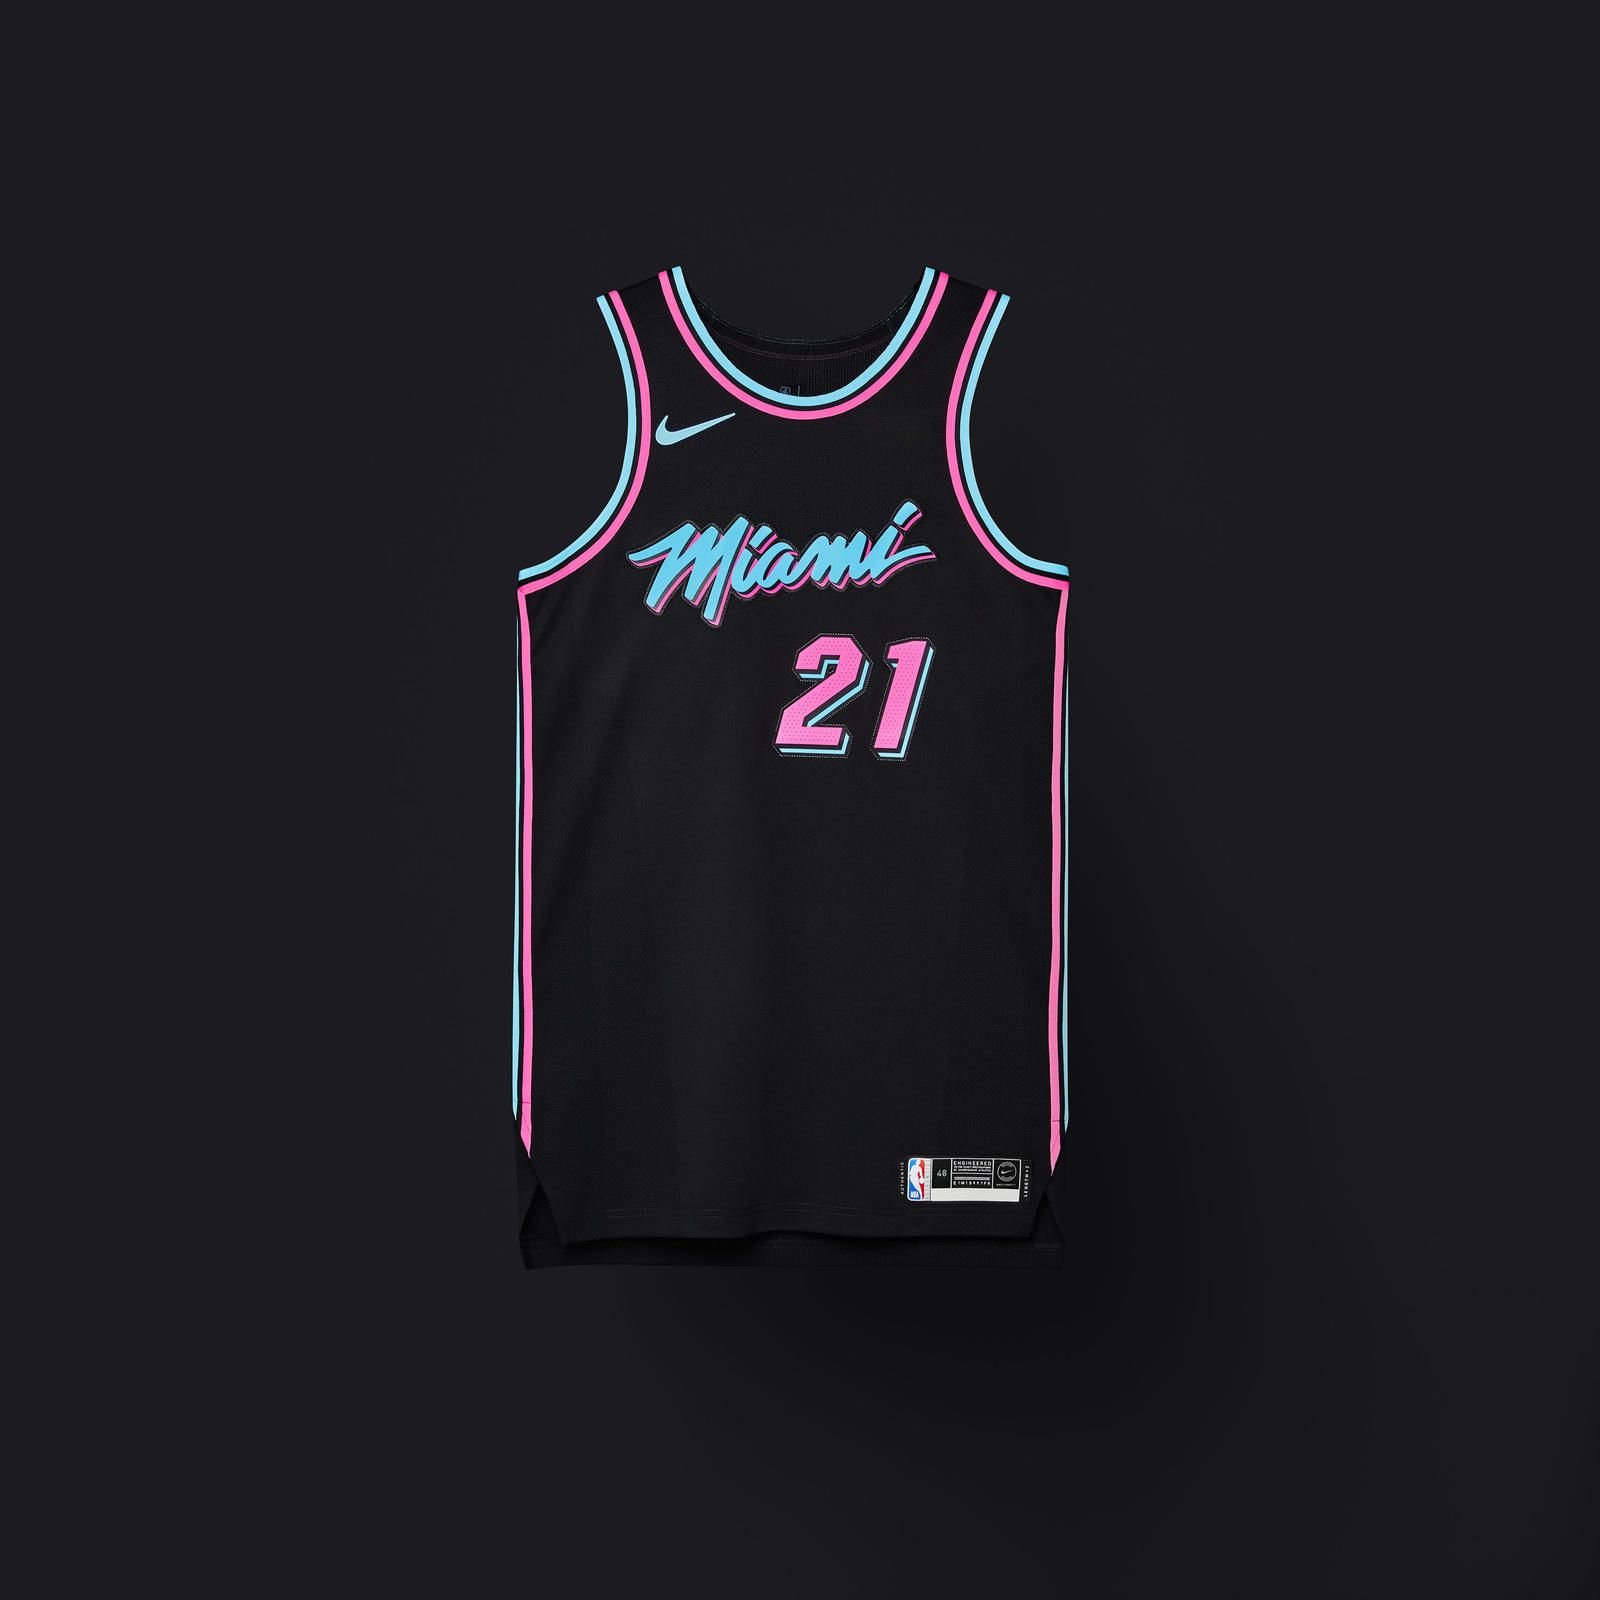 Here Are All Of The Nba City Edition Uniforms For 2018 19 Basketball Jersey Outfit Jersey Design Basketball Uniforms Design